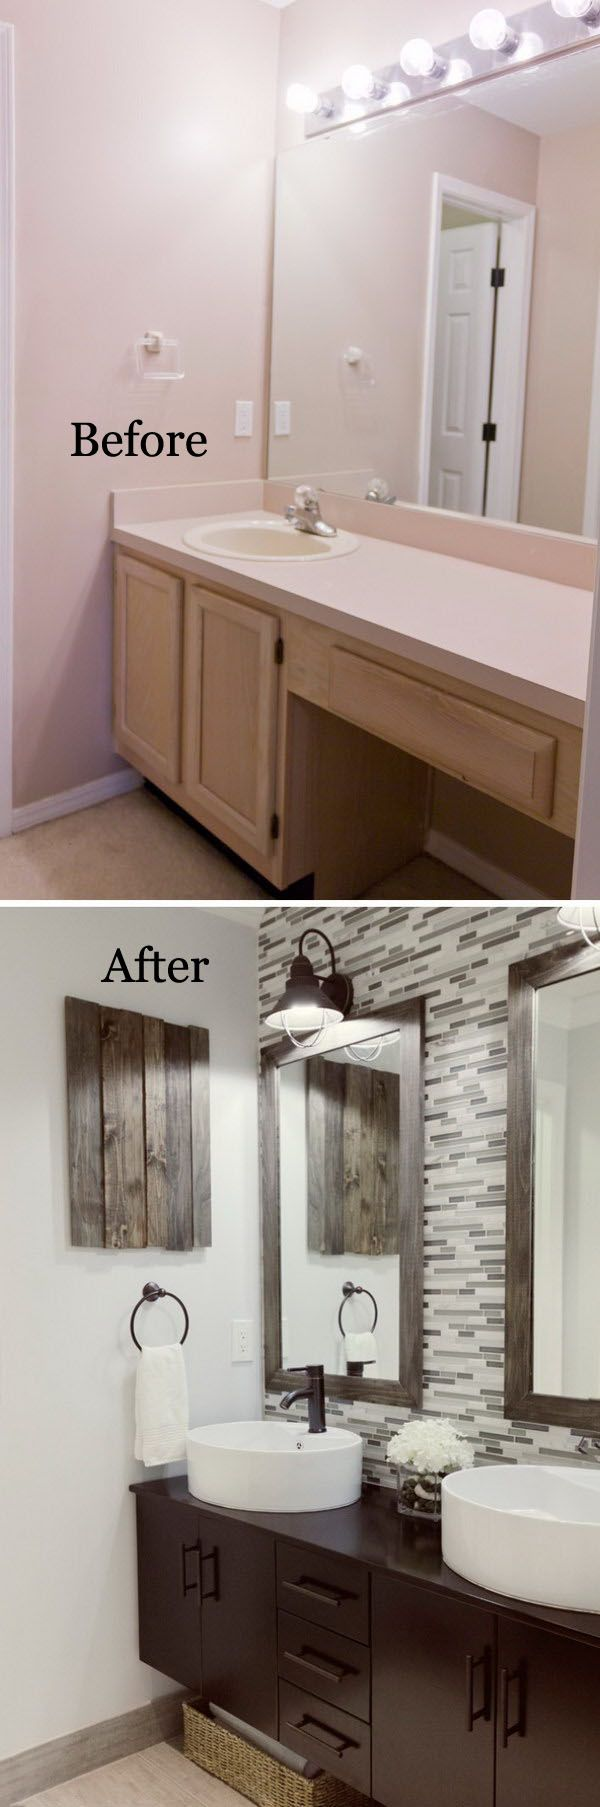 Bedroom Renovation Before And After best 25+ small house renovation ideas only on pinterest | small